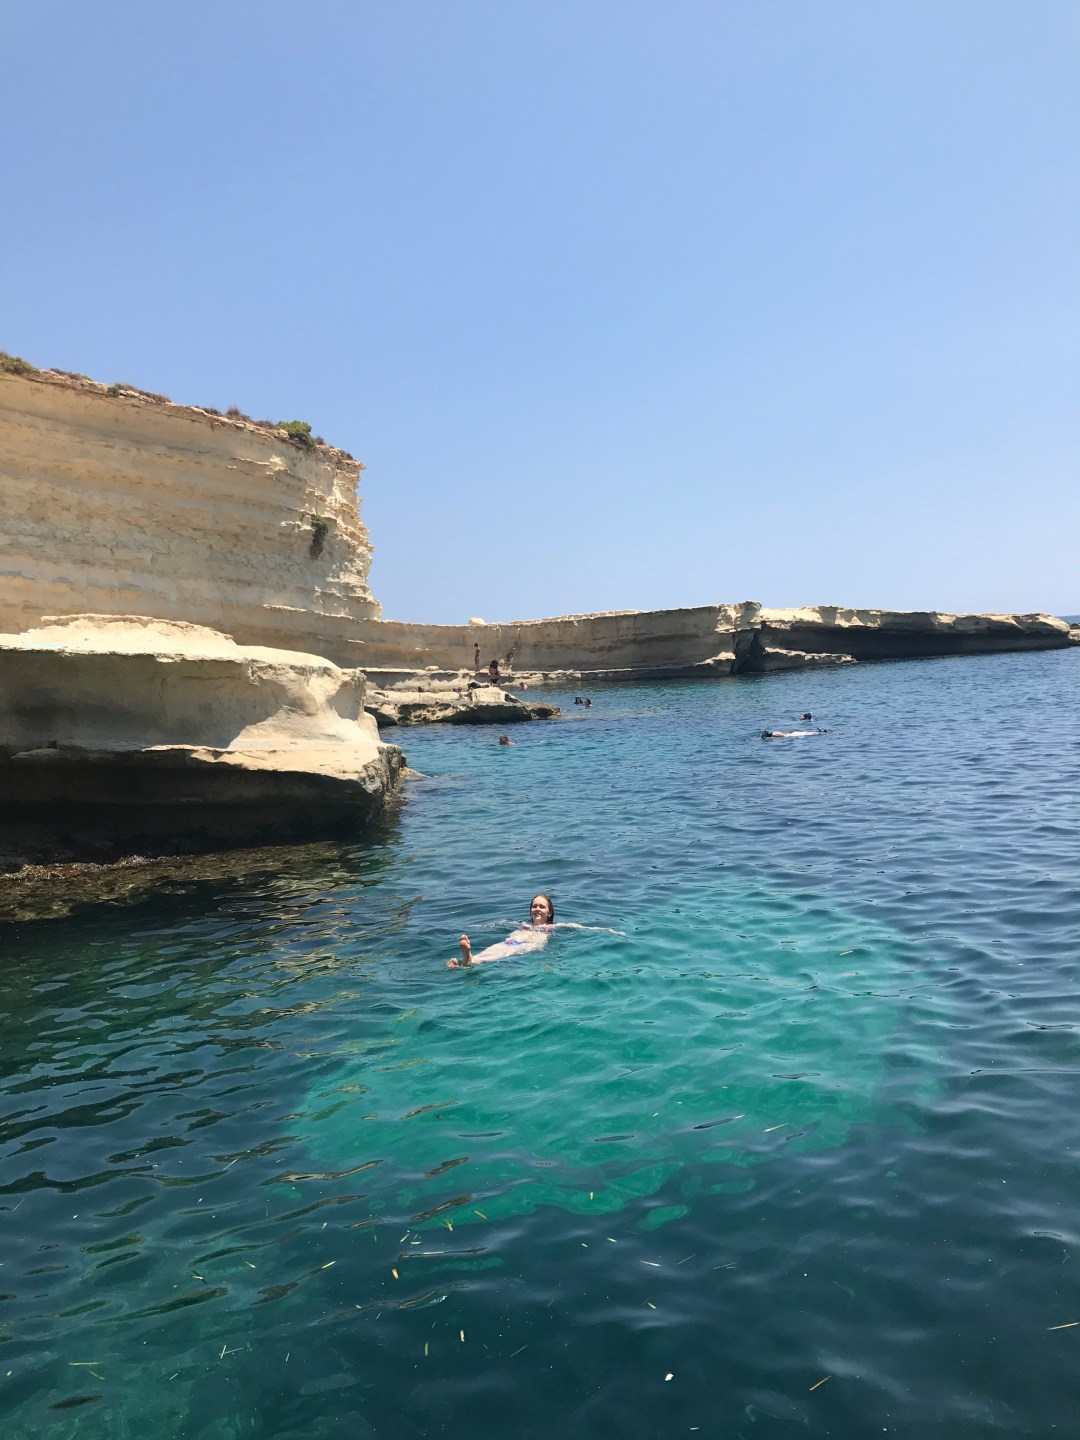 Me after jumping - Day 2 in Malta- St Peter's Pool and the area of Valletta